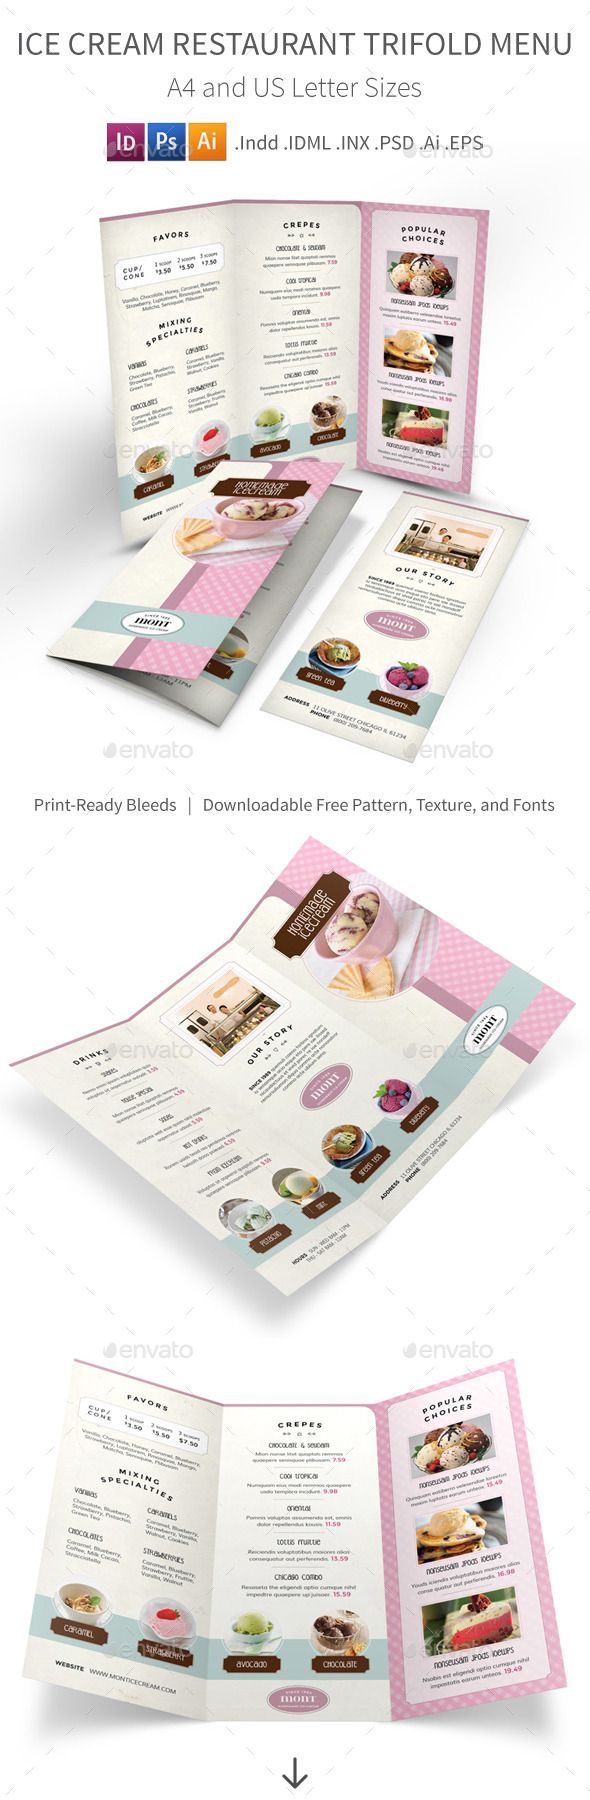 Ice Cream Restaurant Trifold Menu Template #design #alimentationmenu Download: http://graphicriver.net/item/ice-cream-restaurant-trifold-menu/12236391?ref=ksioks